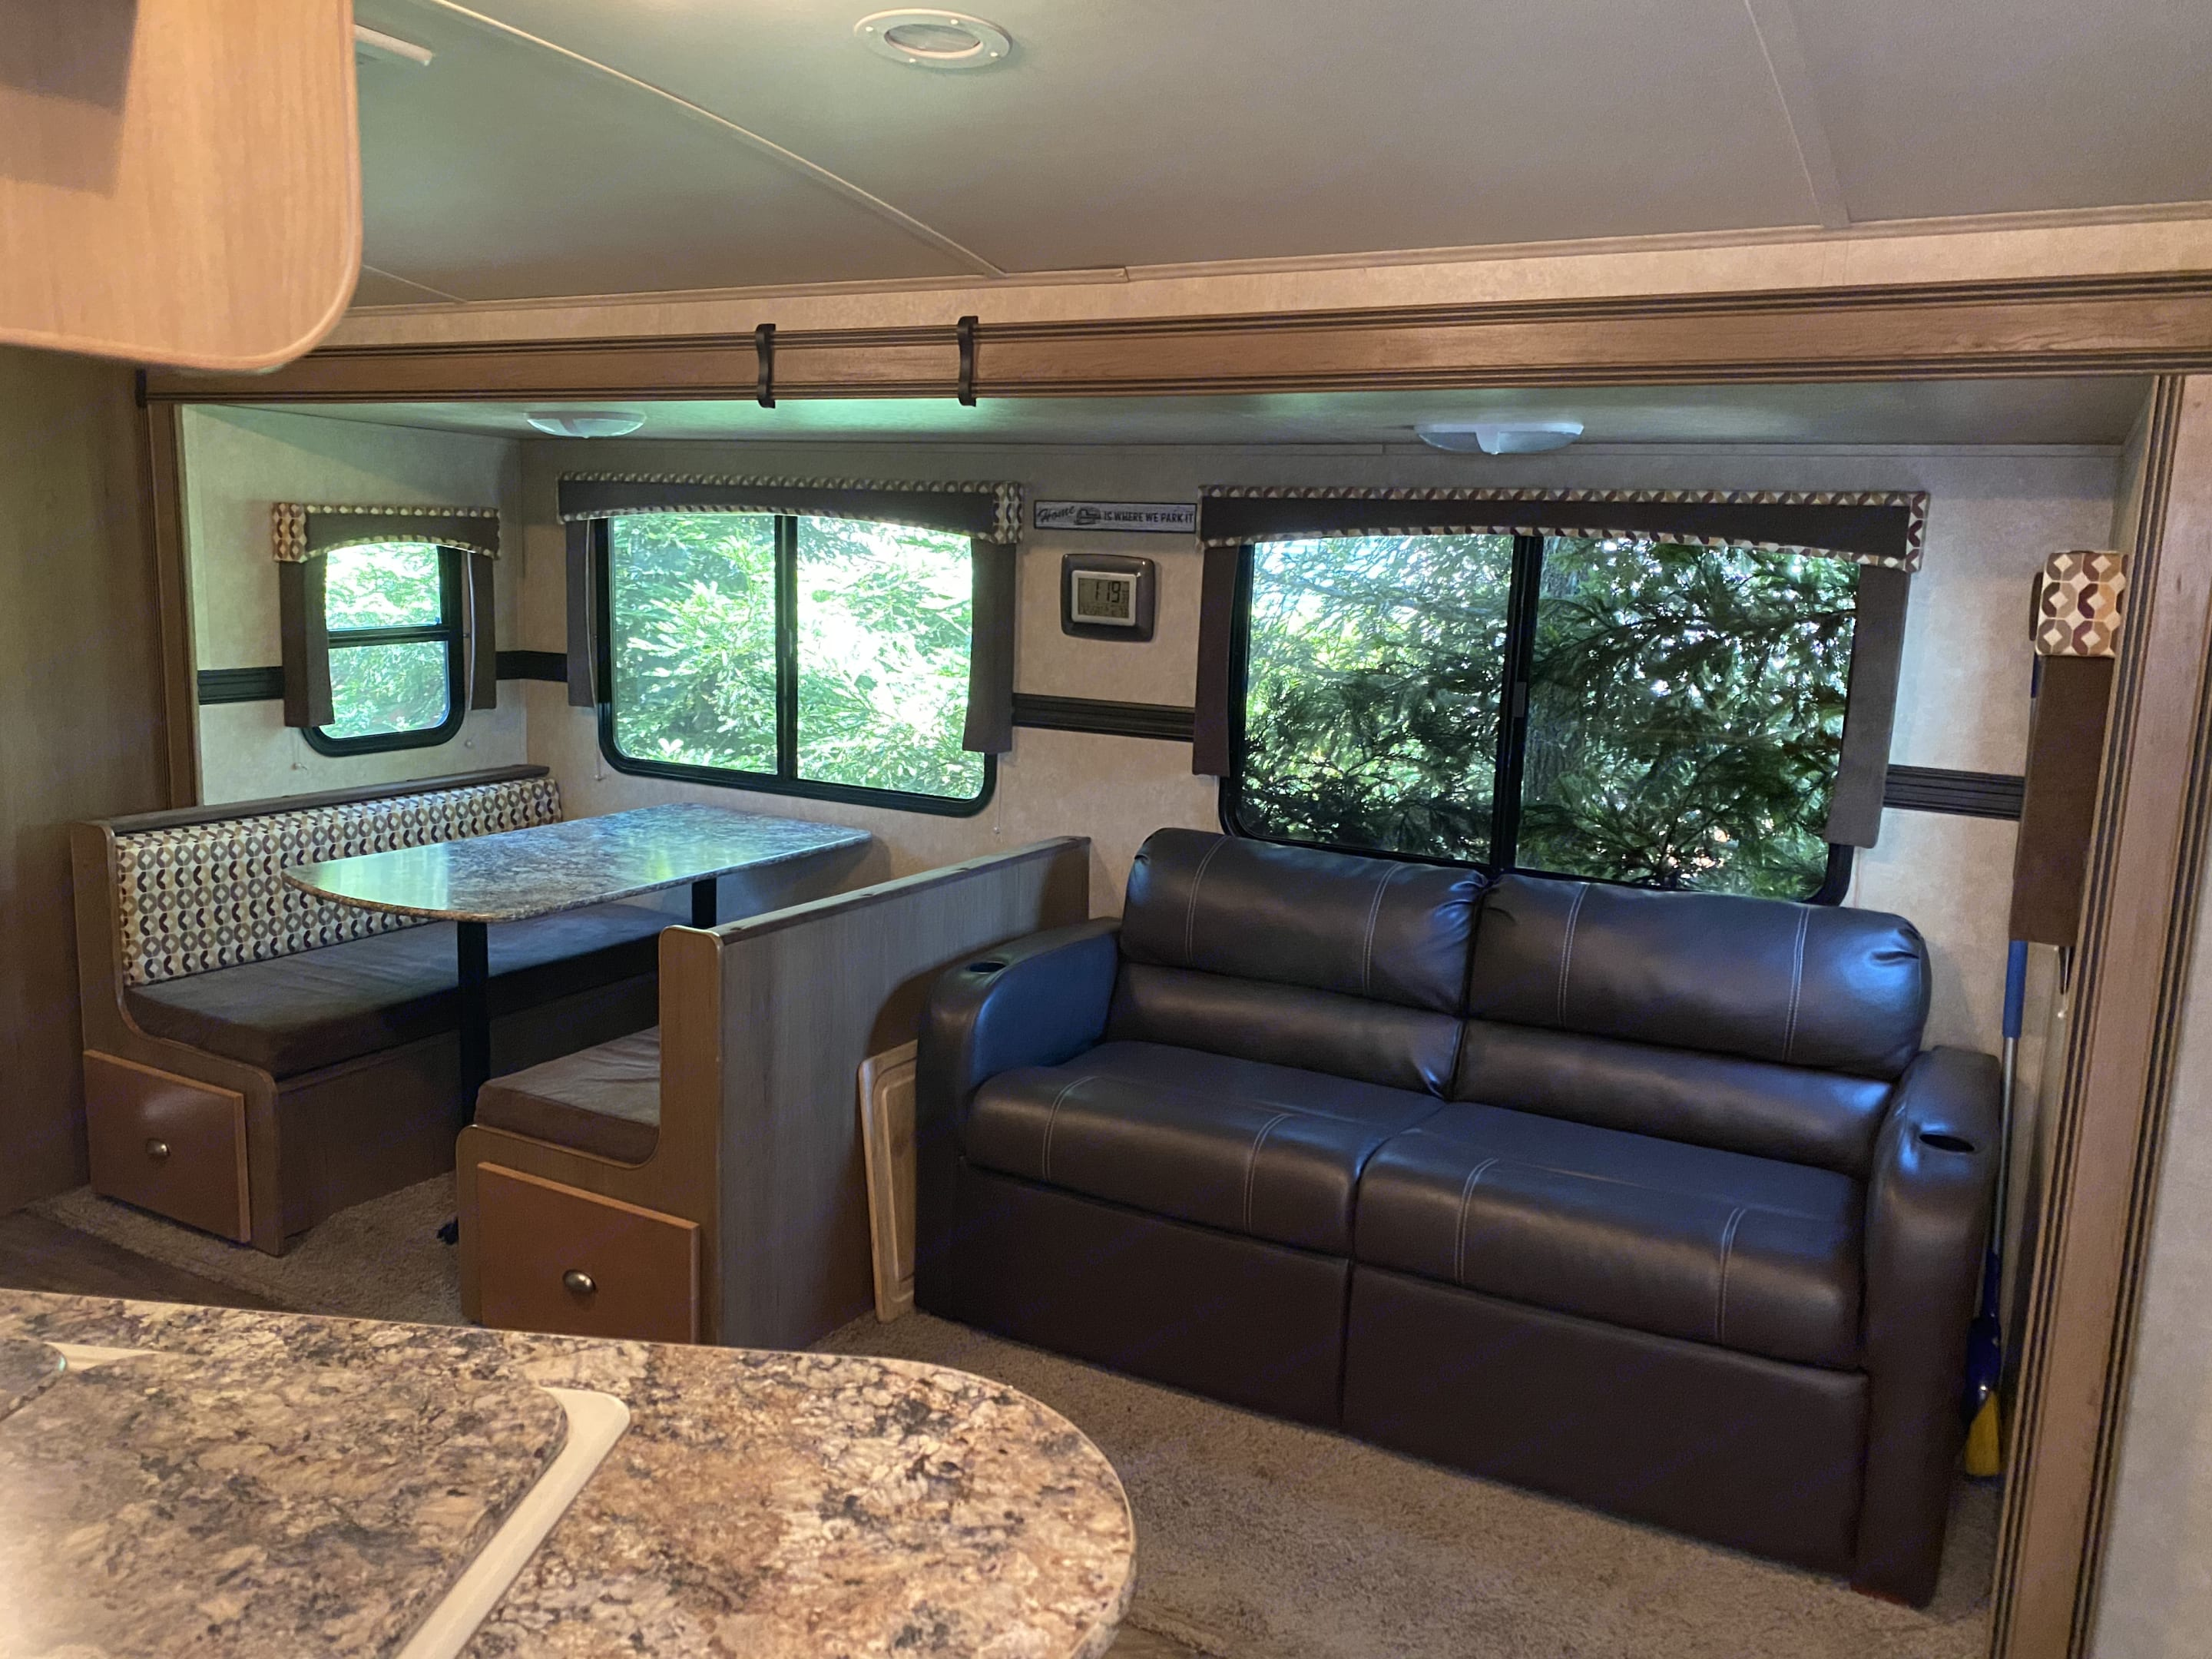 Both dinette and couch slide out for a large living space. CruiserRvCorp ShadowCruiser 2014